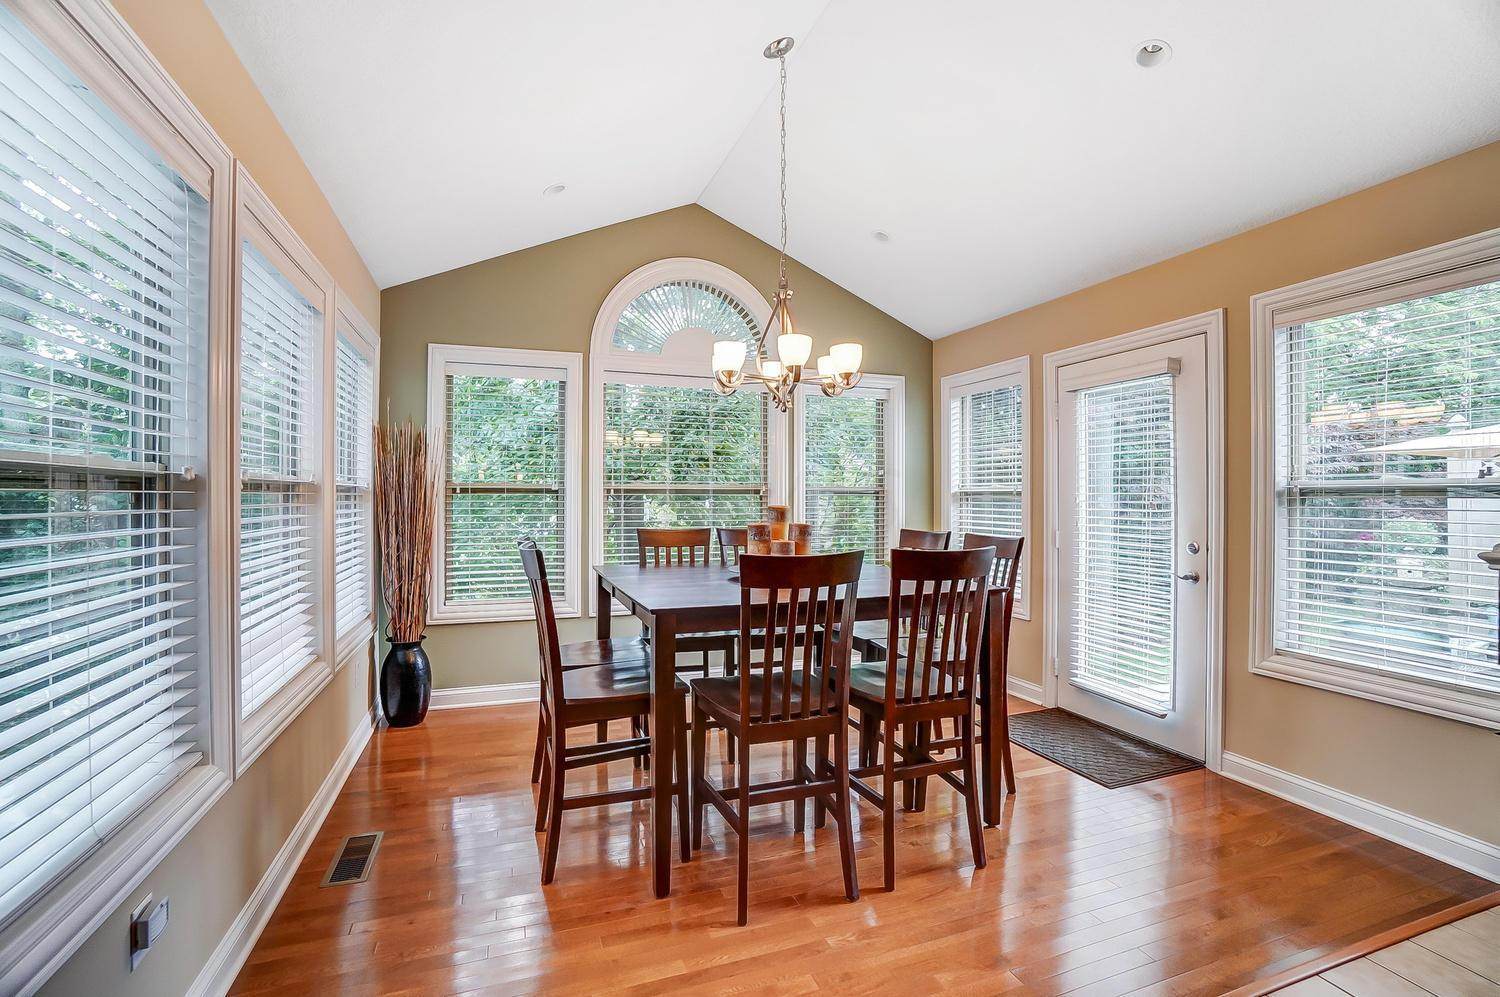 4811 Rays Circle, Dublin, Ohio 43016, 2 Bedrooms Bedrooms, ,3 BathroomsBathrooms,Residential,For Sale,Rays,220025347